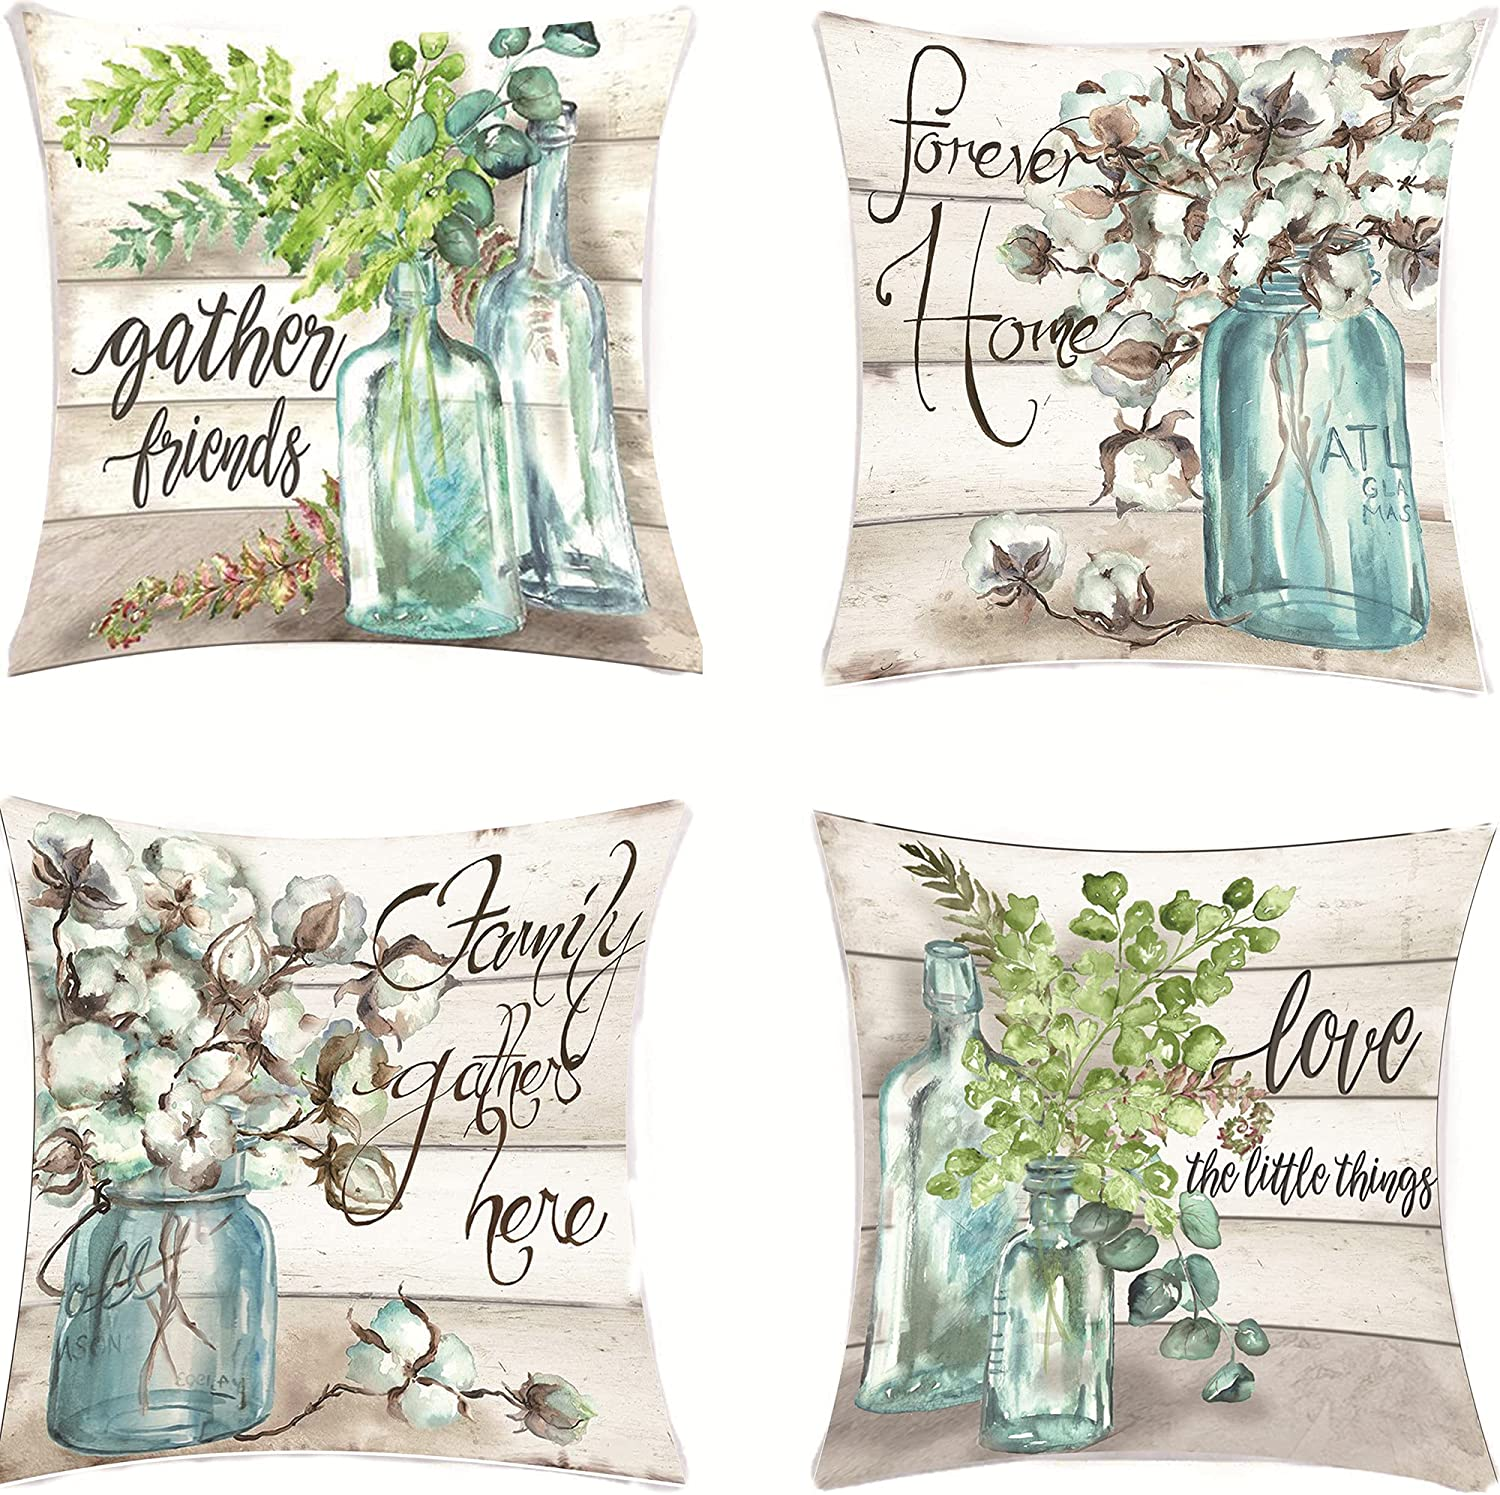 Cotton Floral Decorative Throw Pillow Covers, Fresh Floral Outdoor Cushion Cover, Farmhouse Floral Pillow Case for Sofa Couch Bedroom Home Decor